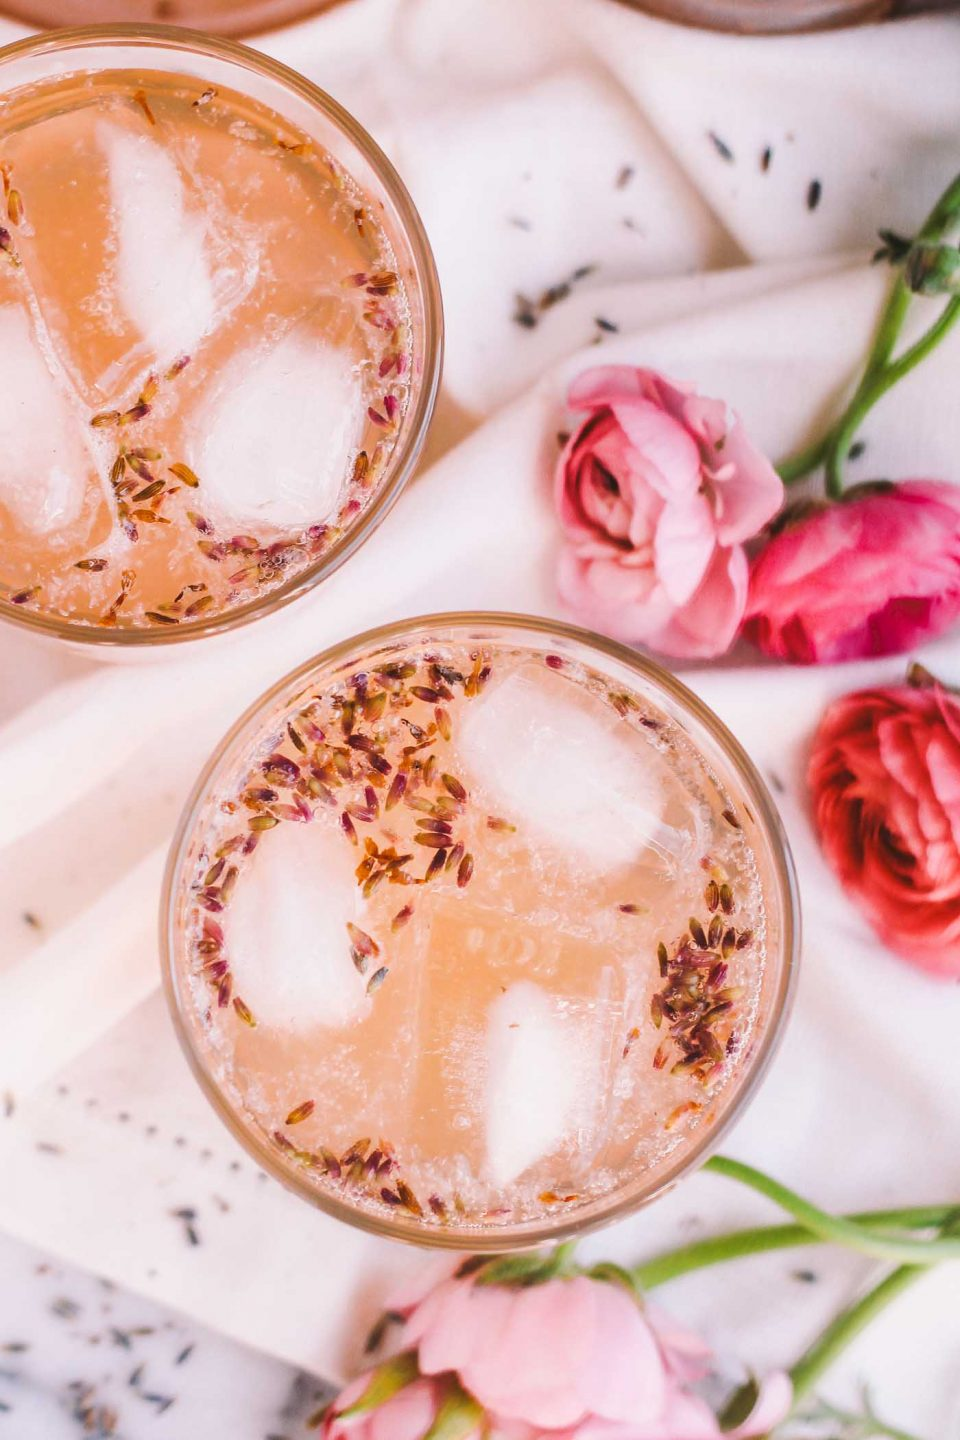 lavender lemonade rosé cocktails taste like summer! pair your favorite dry rosé with a tangy & sweet homemade lavender lemonade & topped with sparkling water. be prepared to sip on these lavender lemonade rosé cocktails all summer long. these simple pink drinks are perfect for mother's day, bridal showers, girls night, or just having a drink or two on a friday night while your guy drinks beer. seriously pretty, seriously delicious, seriously easy!   cocktail recipe, lavender cocktail, rose cocktail, girls night, summer drink  